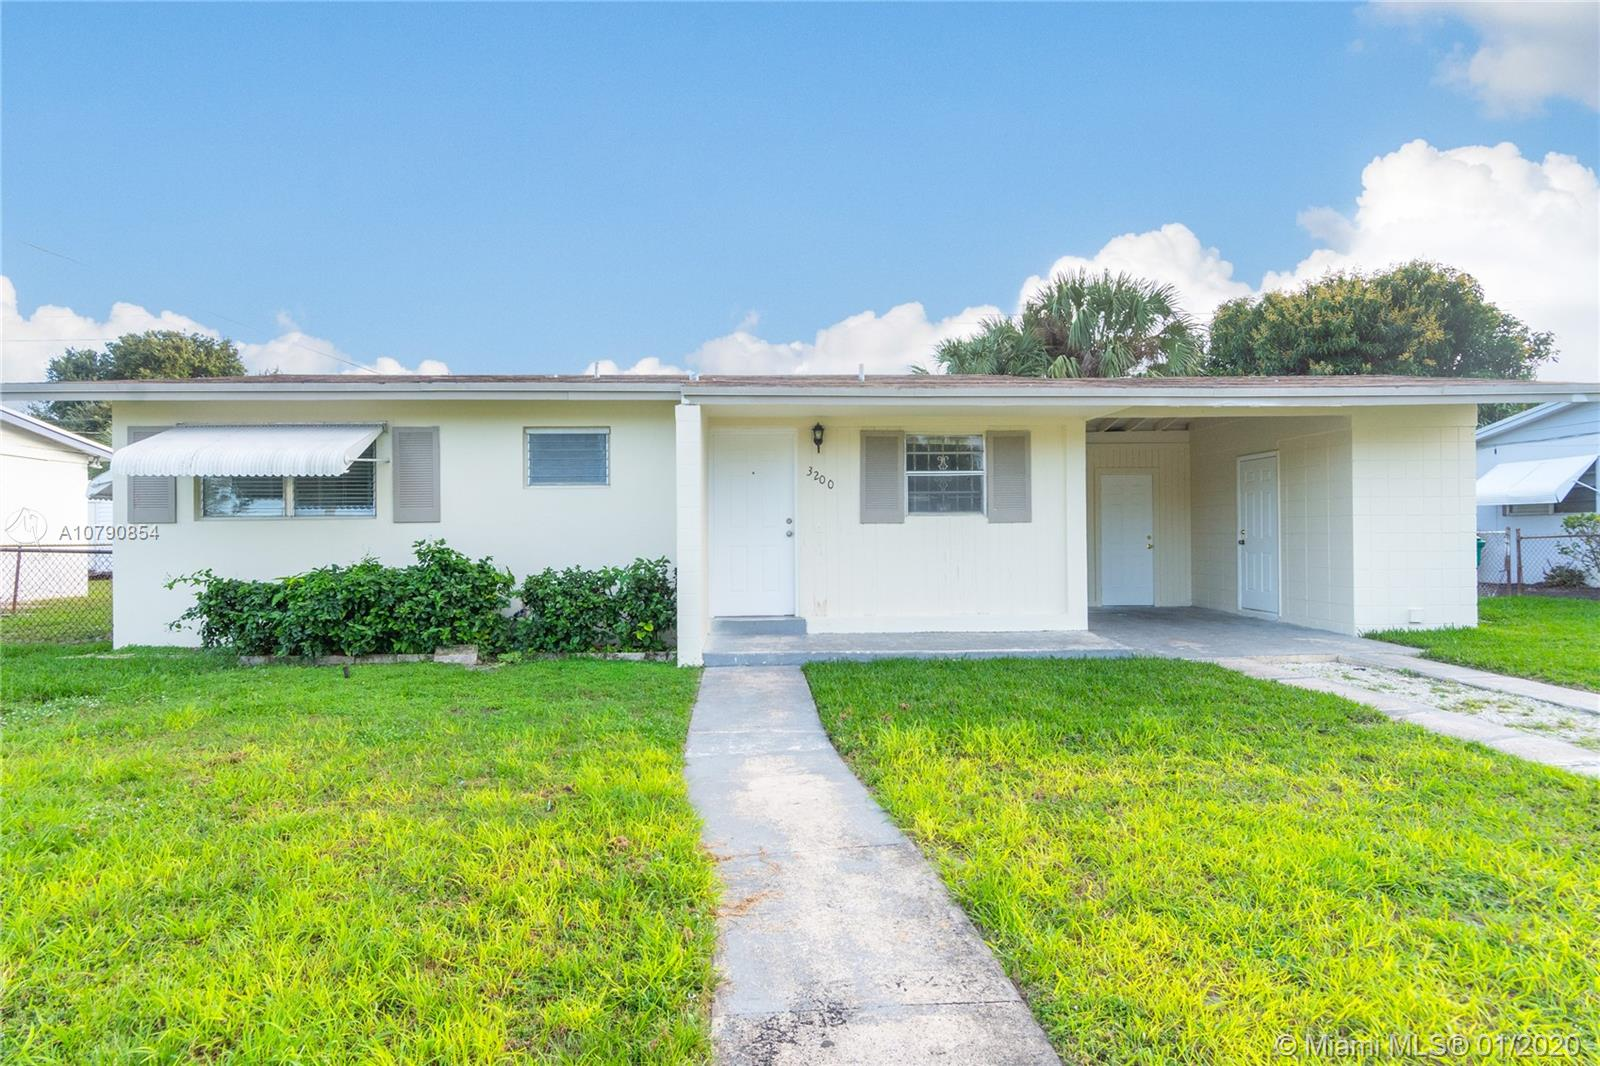 REMODELED & SPACIOUS 2 BEDROOM, 1 BATHROOM, FLORIDA ROOM AND COVERT CARPORT, TILE AND CONCRETE FLOORS, FRESHLY PAINTED INSIDE AND OUT, LARGE FENCED BACKYARD, NEW APPLIANCES, WASHER/DRYER INSIDE. NEAR MAJOR HIGHWAY, RESTAURANTS & SHOPPING CENTERS.